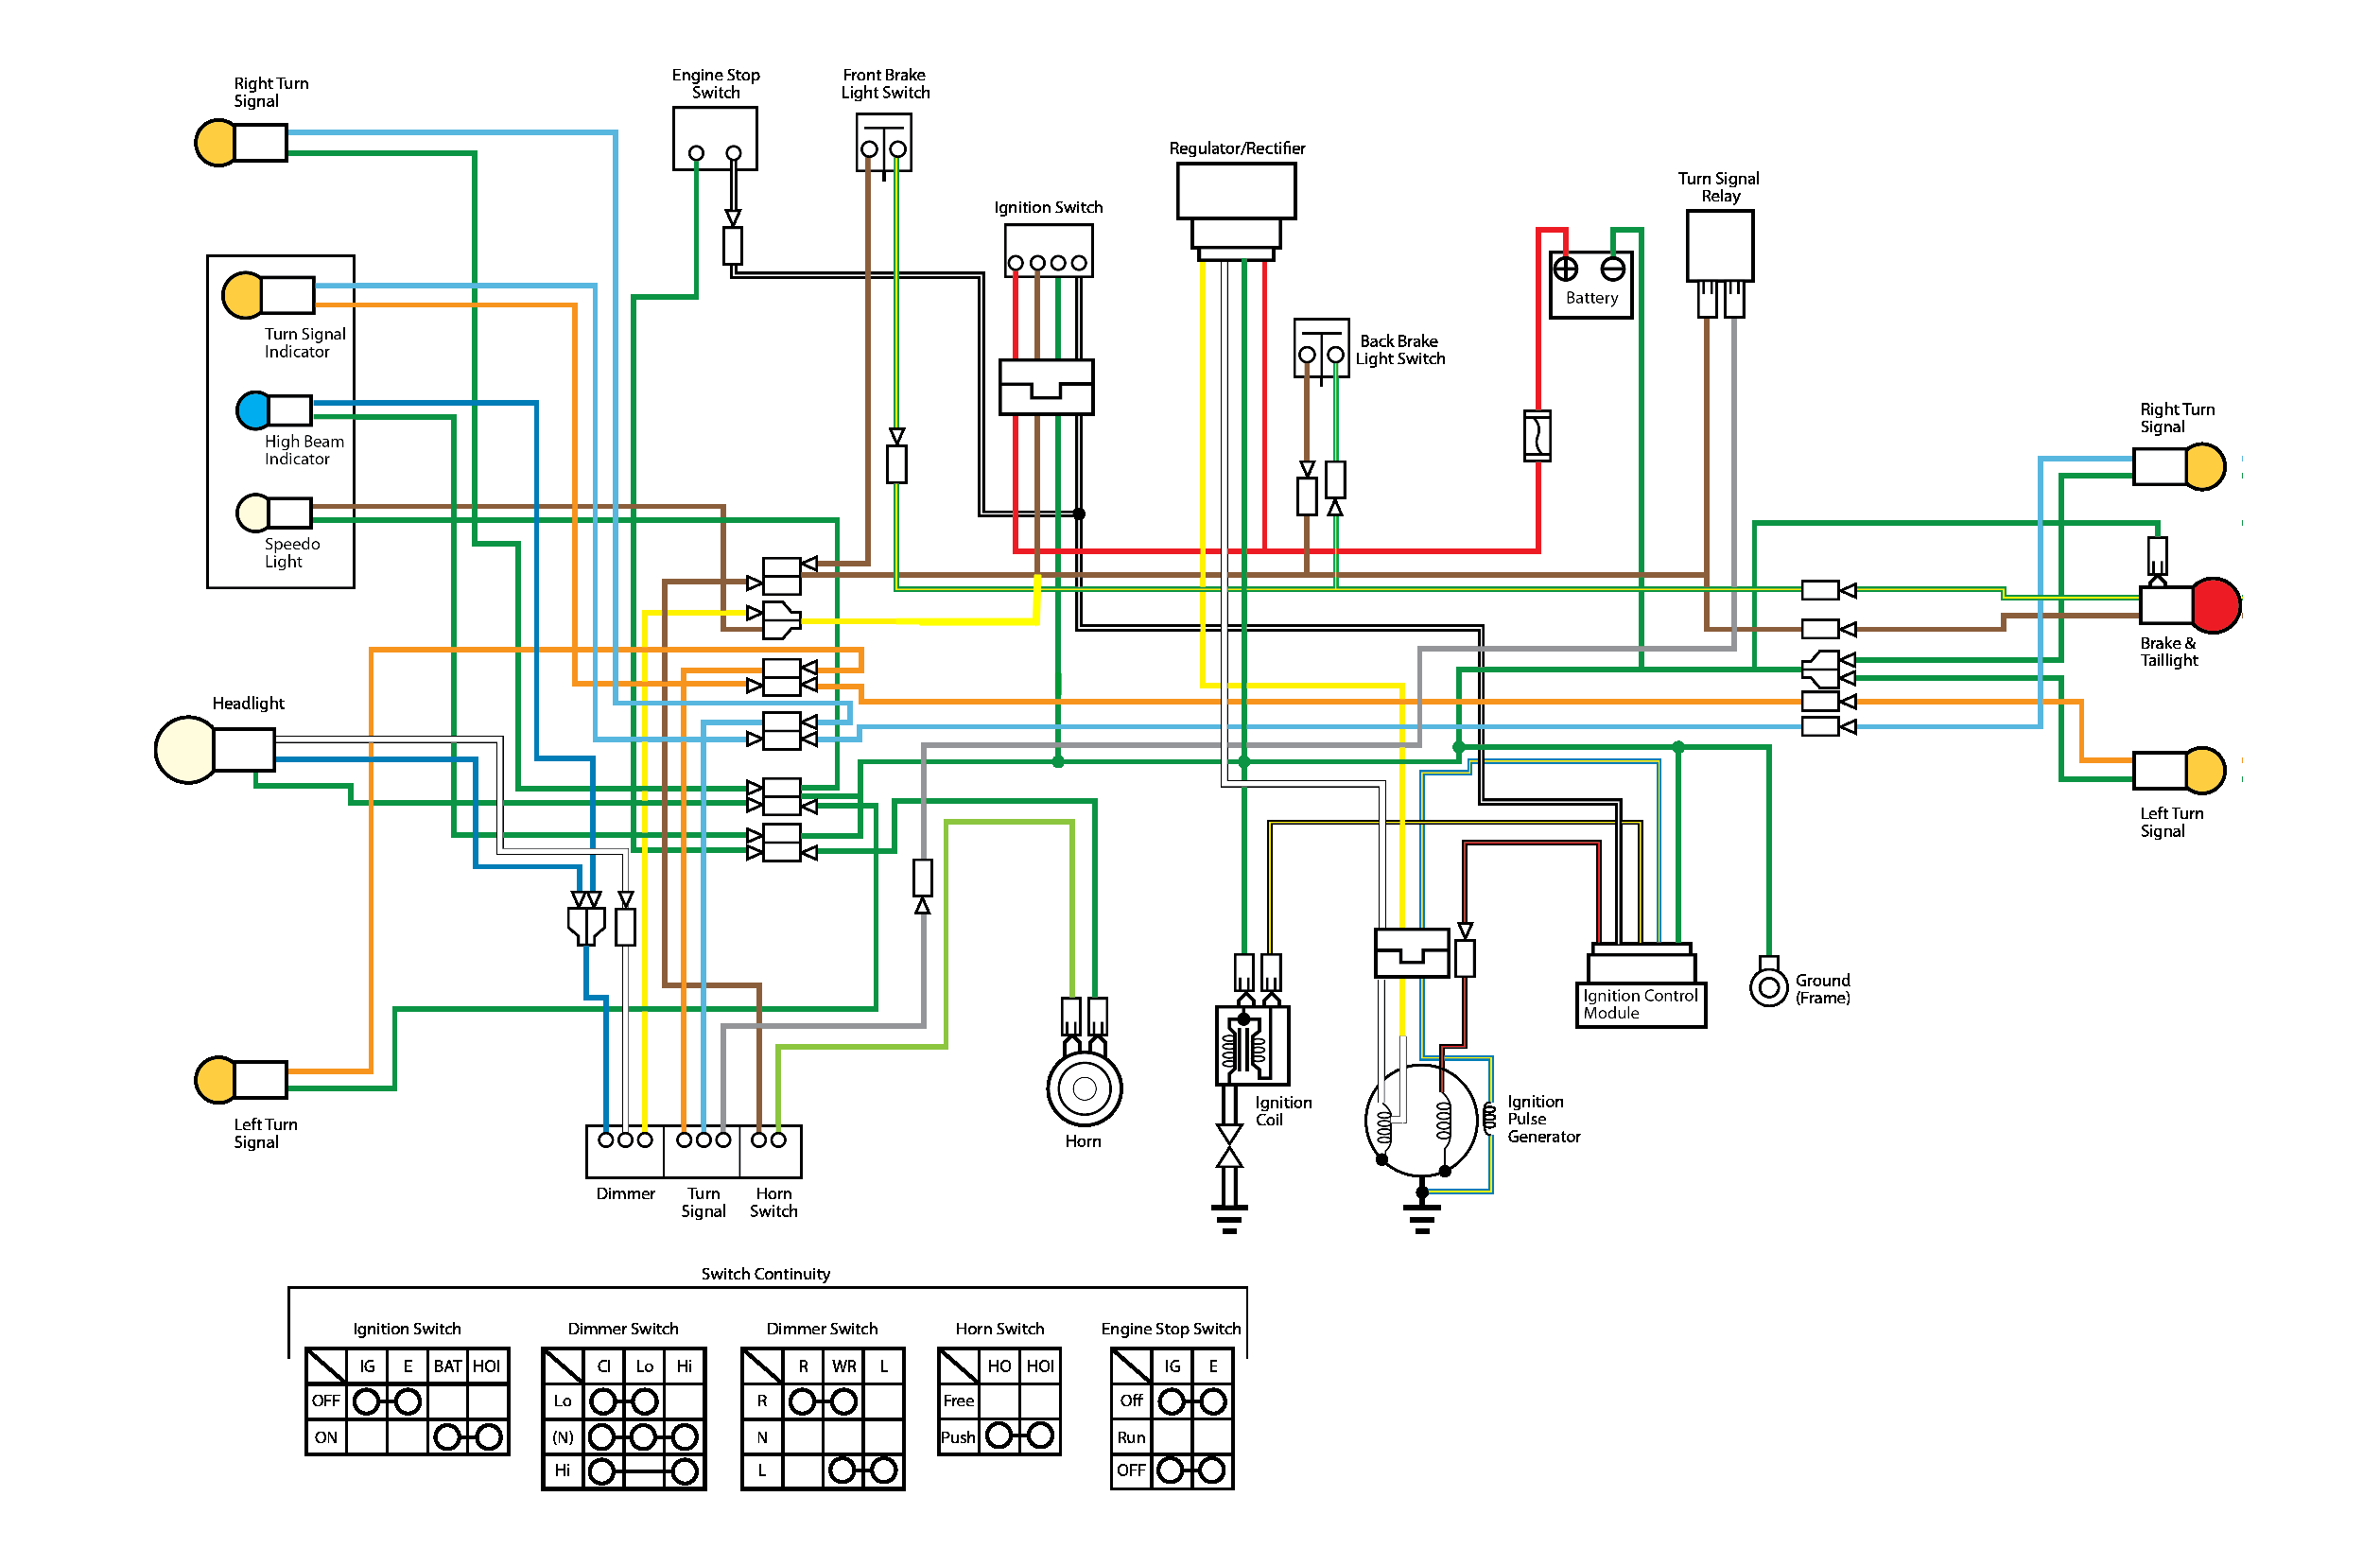 discover 100 wiring discover image wiring diagram baja cl 1 wiring diagram baja discover your wiring diagram on discover 100 wiring